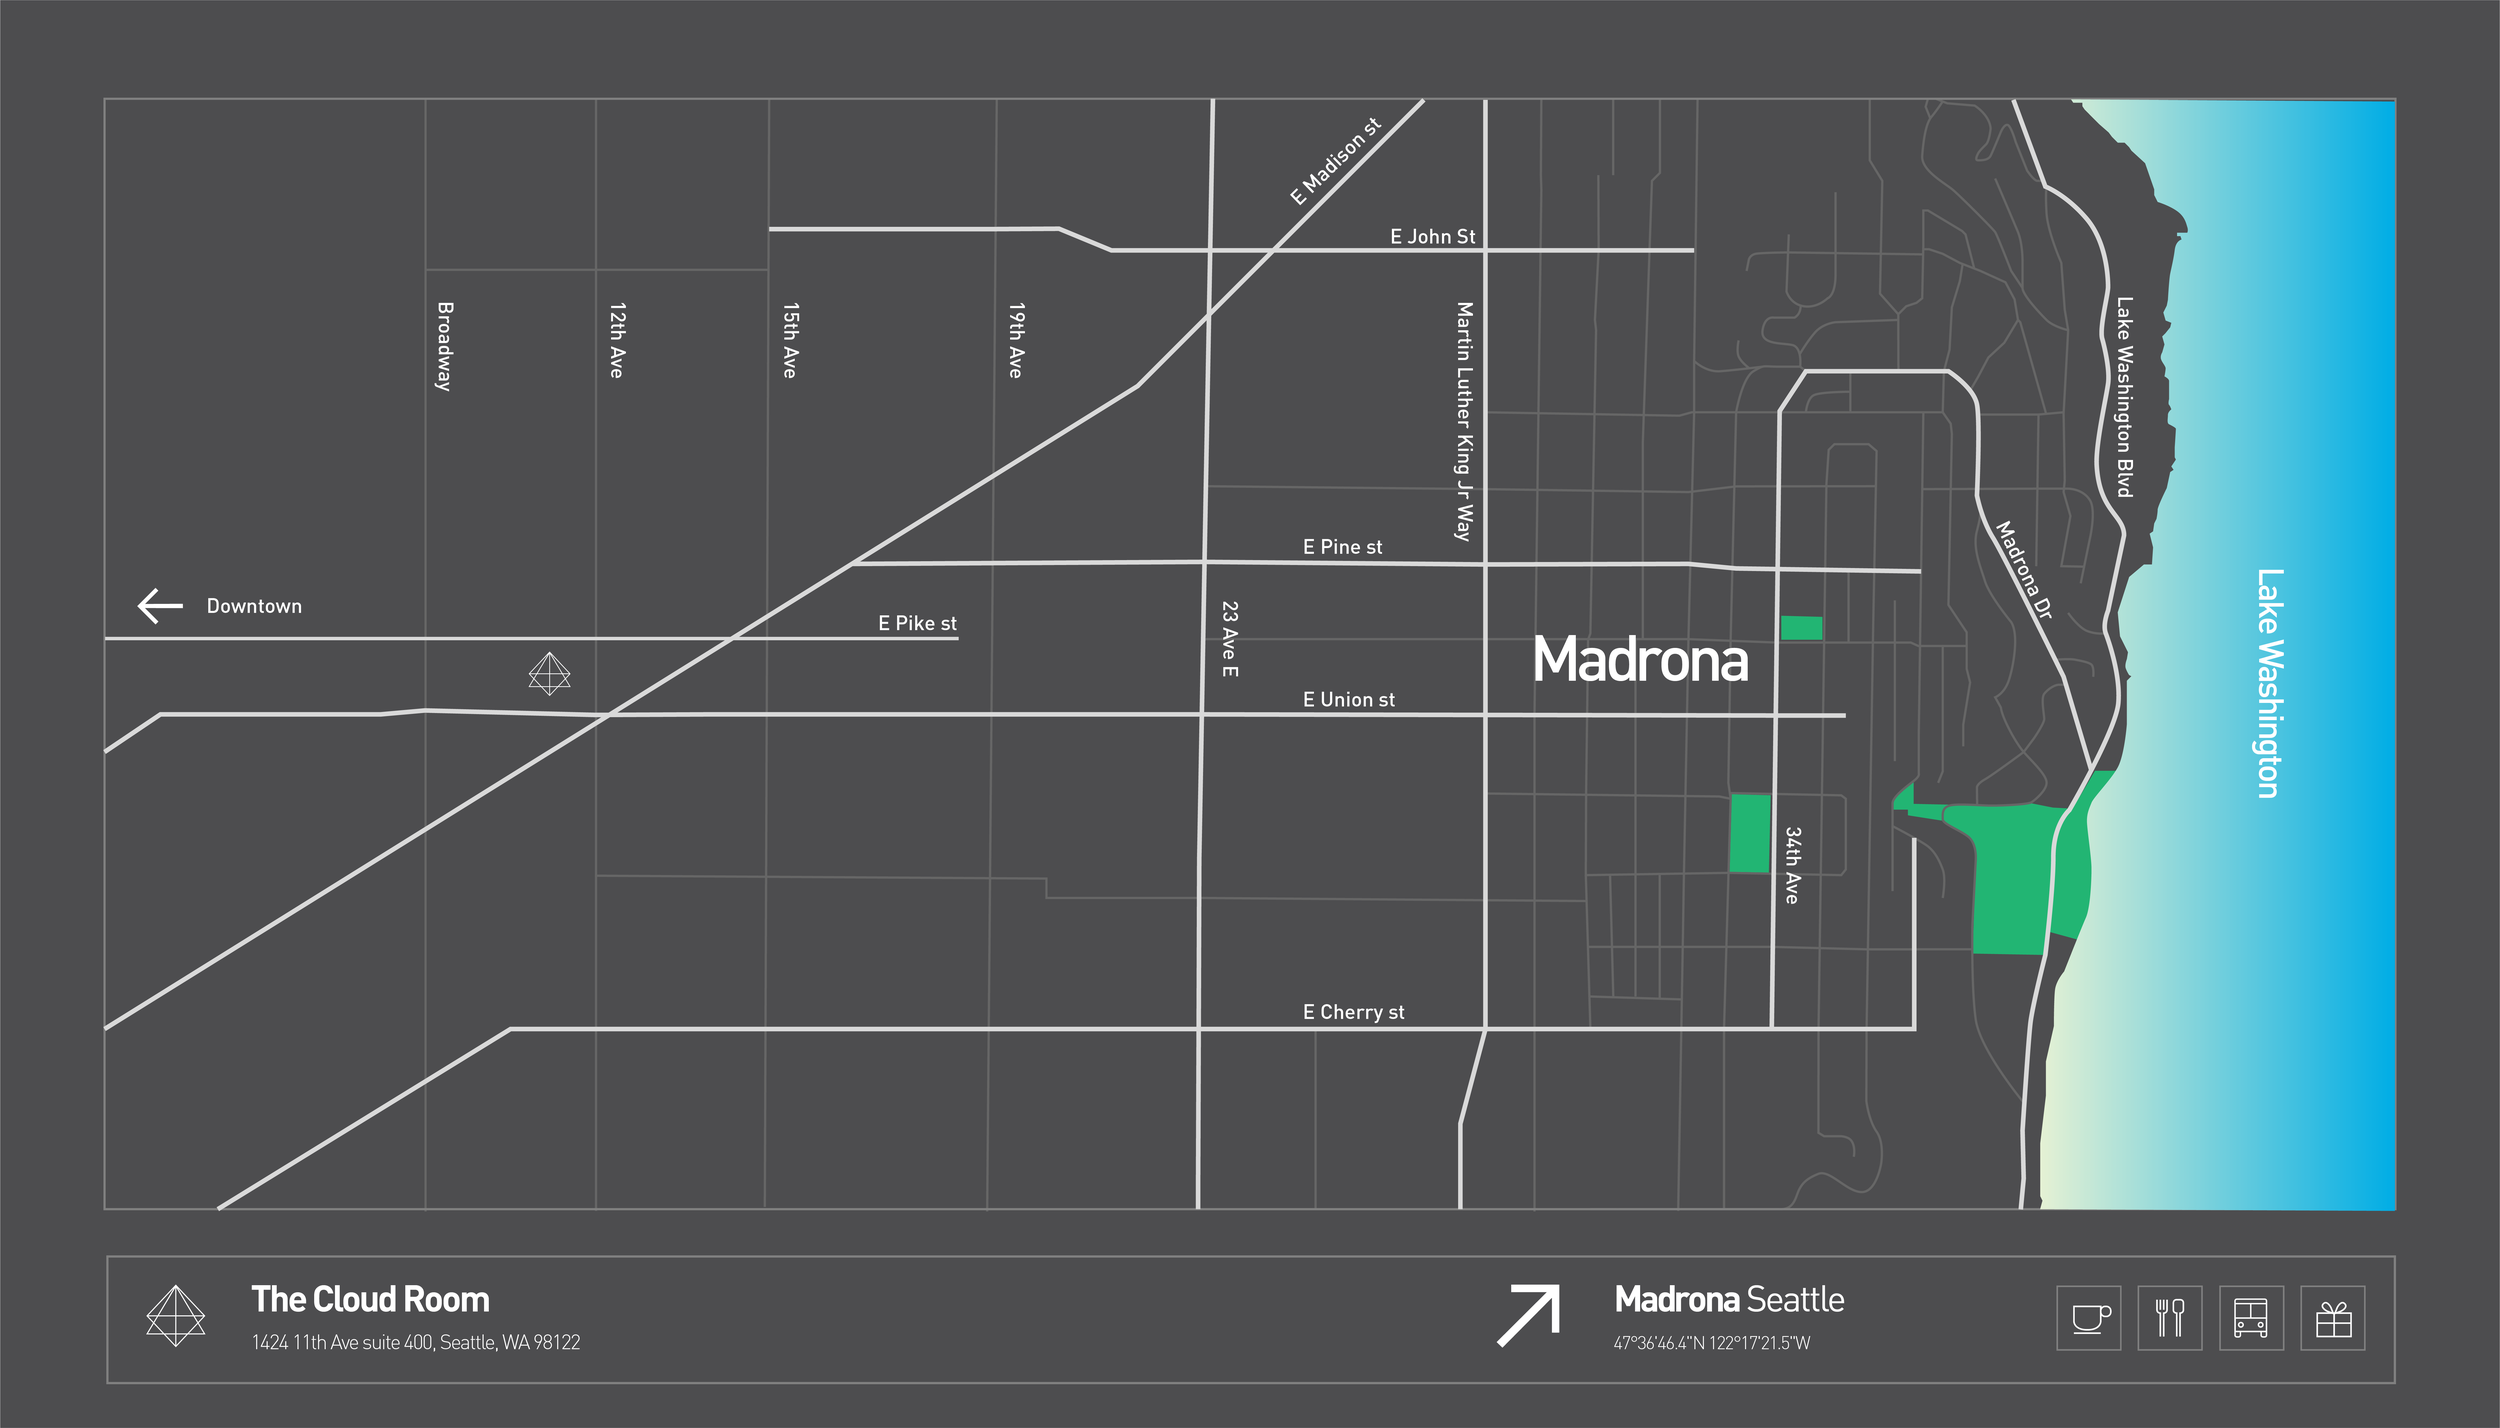 CloudRoom-Madrona-map-1-01.png